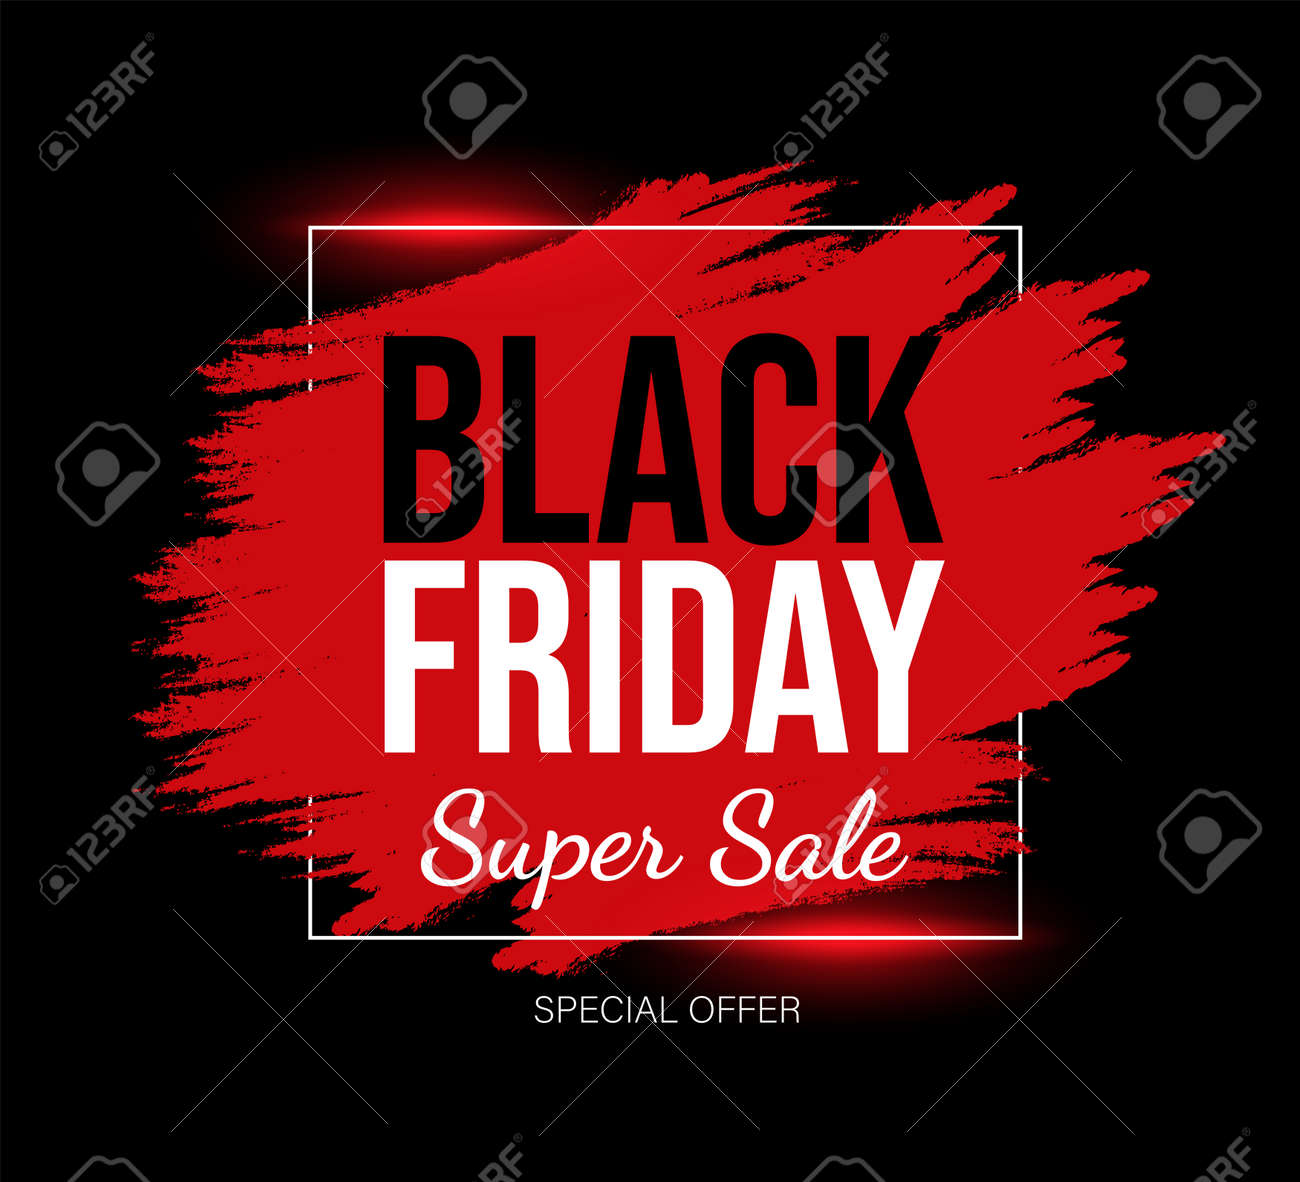 Black Friday marketing card template with text space. Red and black super sale promotional banner design. - 172534850